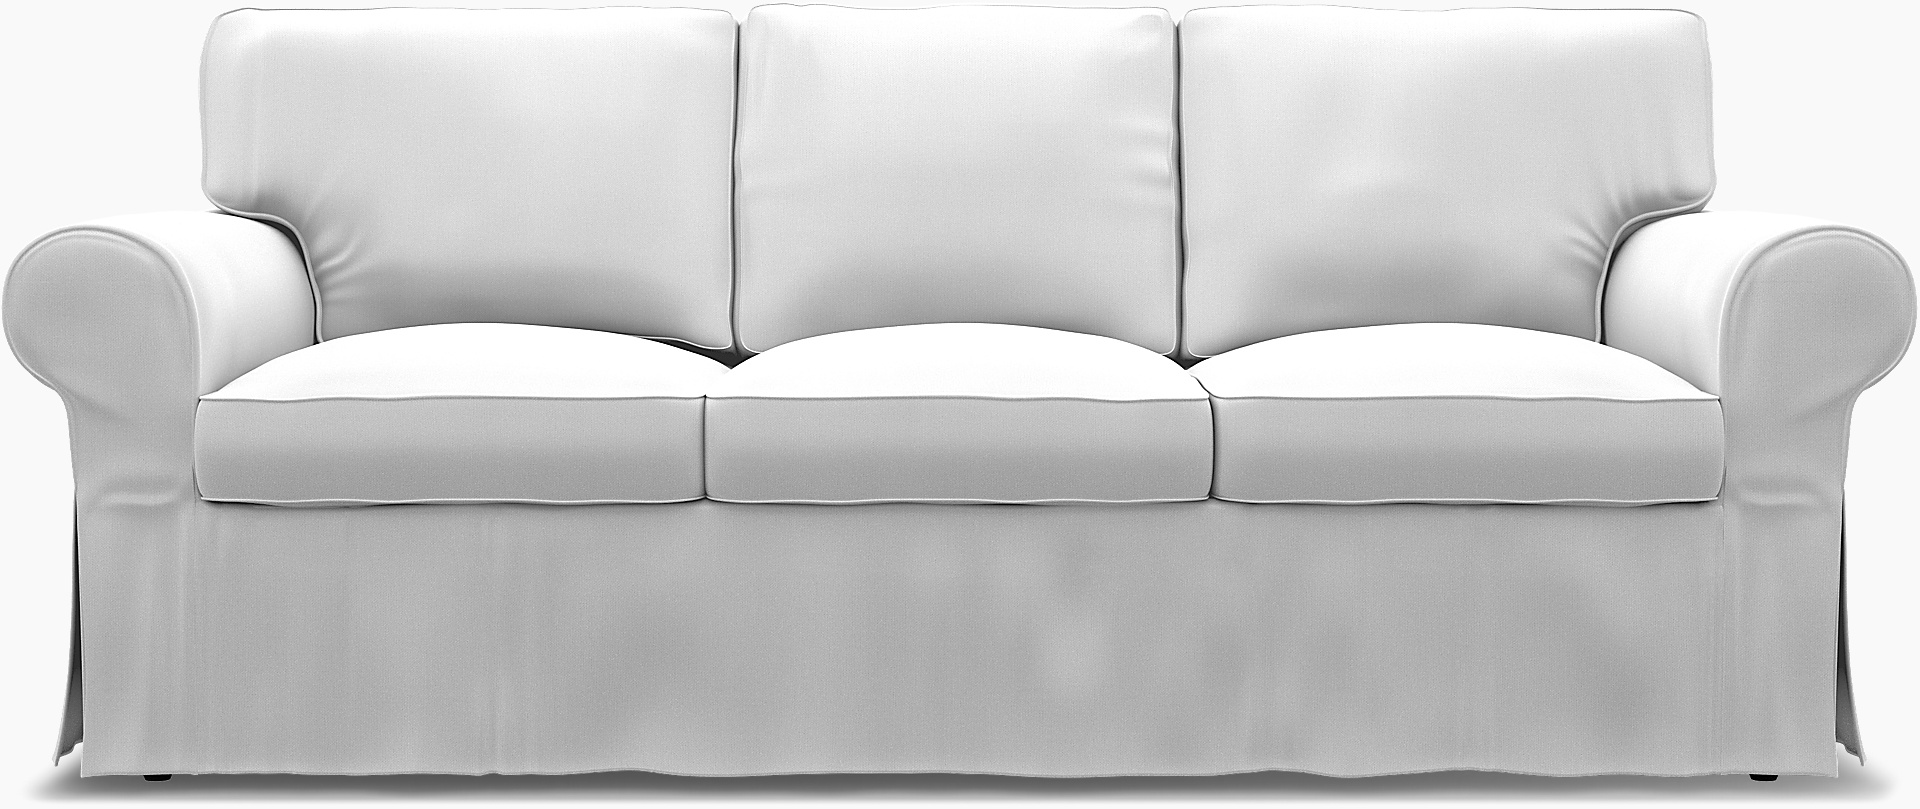 more photos 0ee7d 03914 IKEA Ektorp, 3 Seater sofa bed cover with piping - Bemz | Bemz